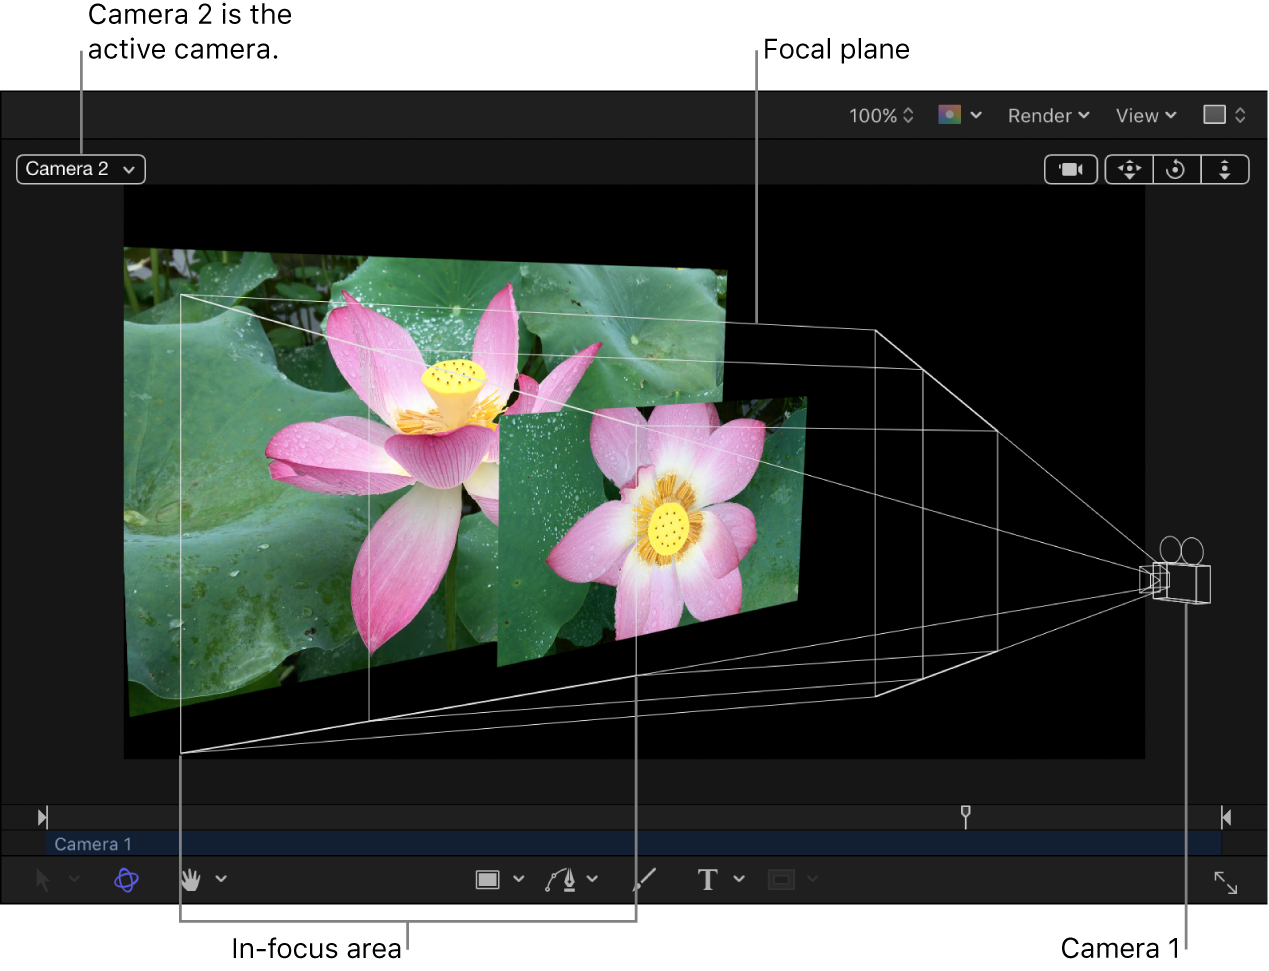 Canvas showing camera's focal plane and in-focus area